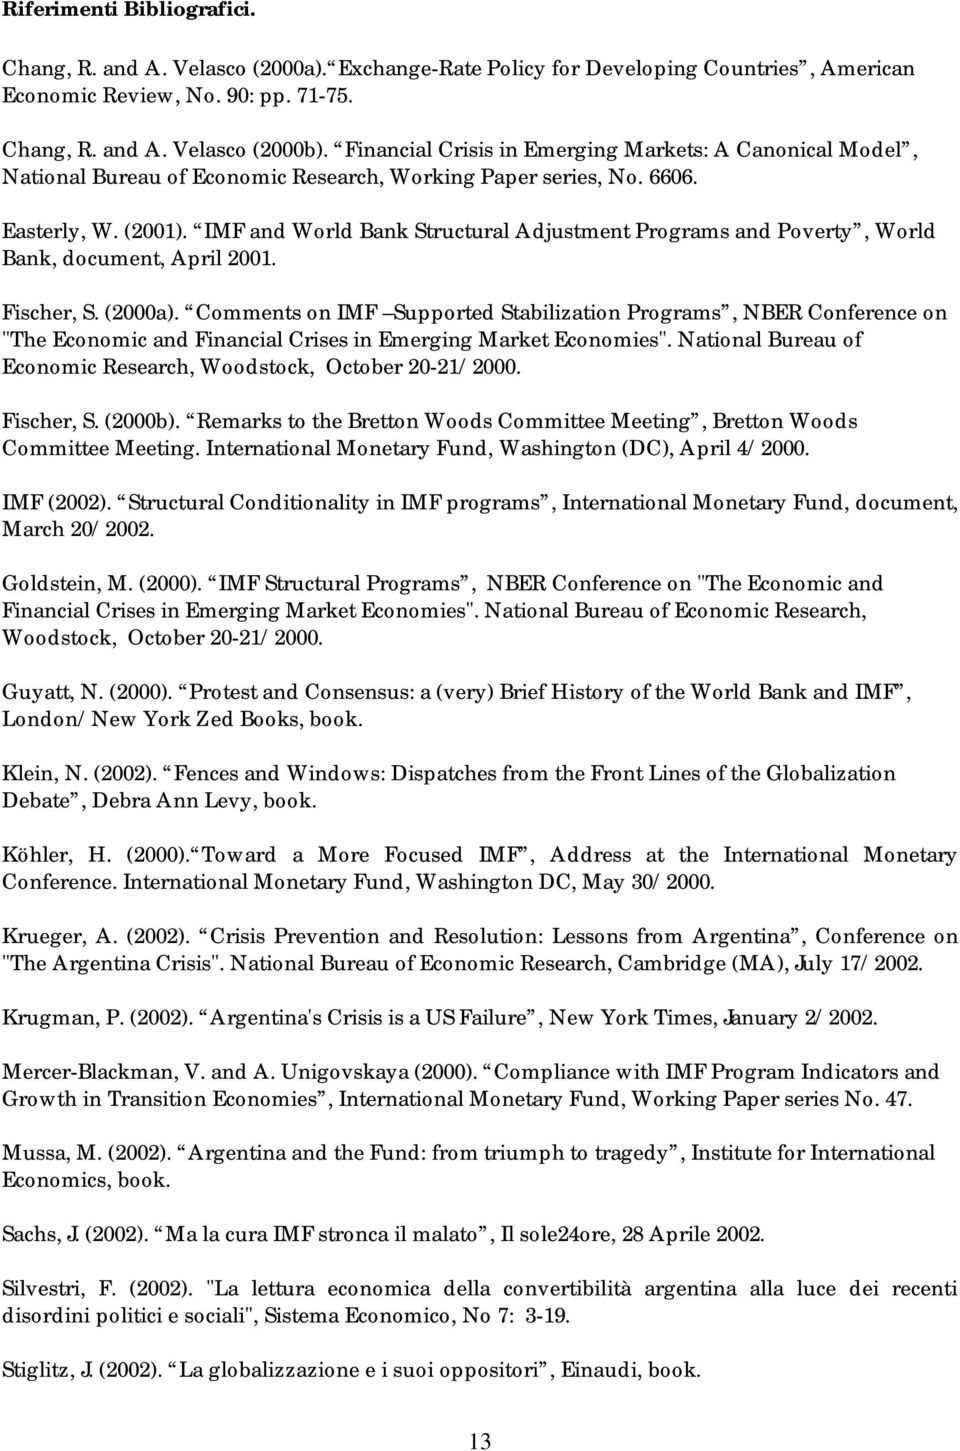 IMF and World Bank Structural Adjustment Programs and Poverty, World Bank, document, April 2001. Fischer, S. (2000a).